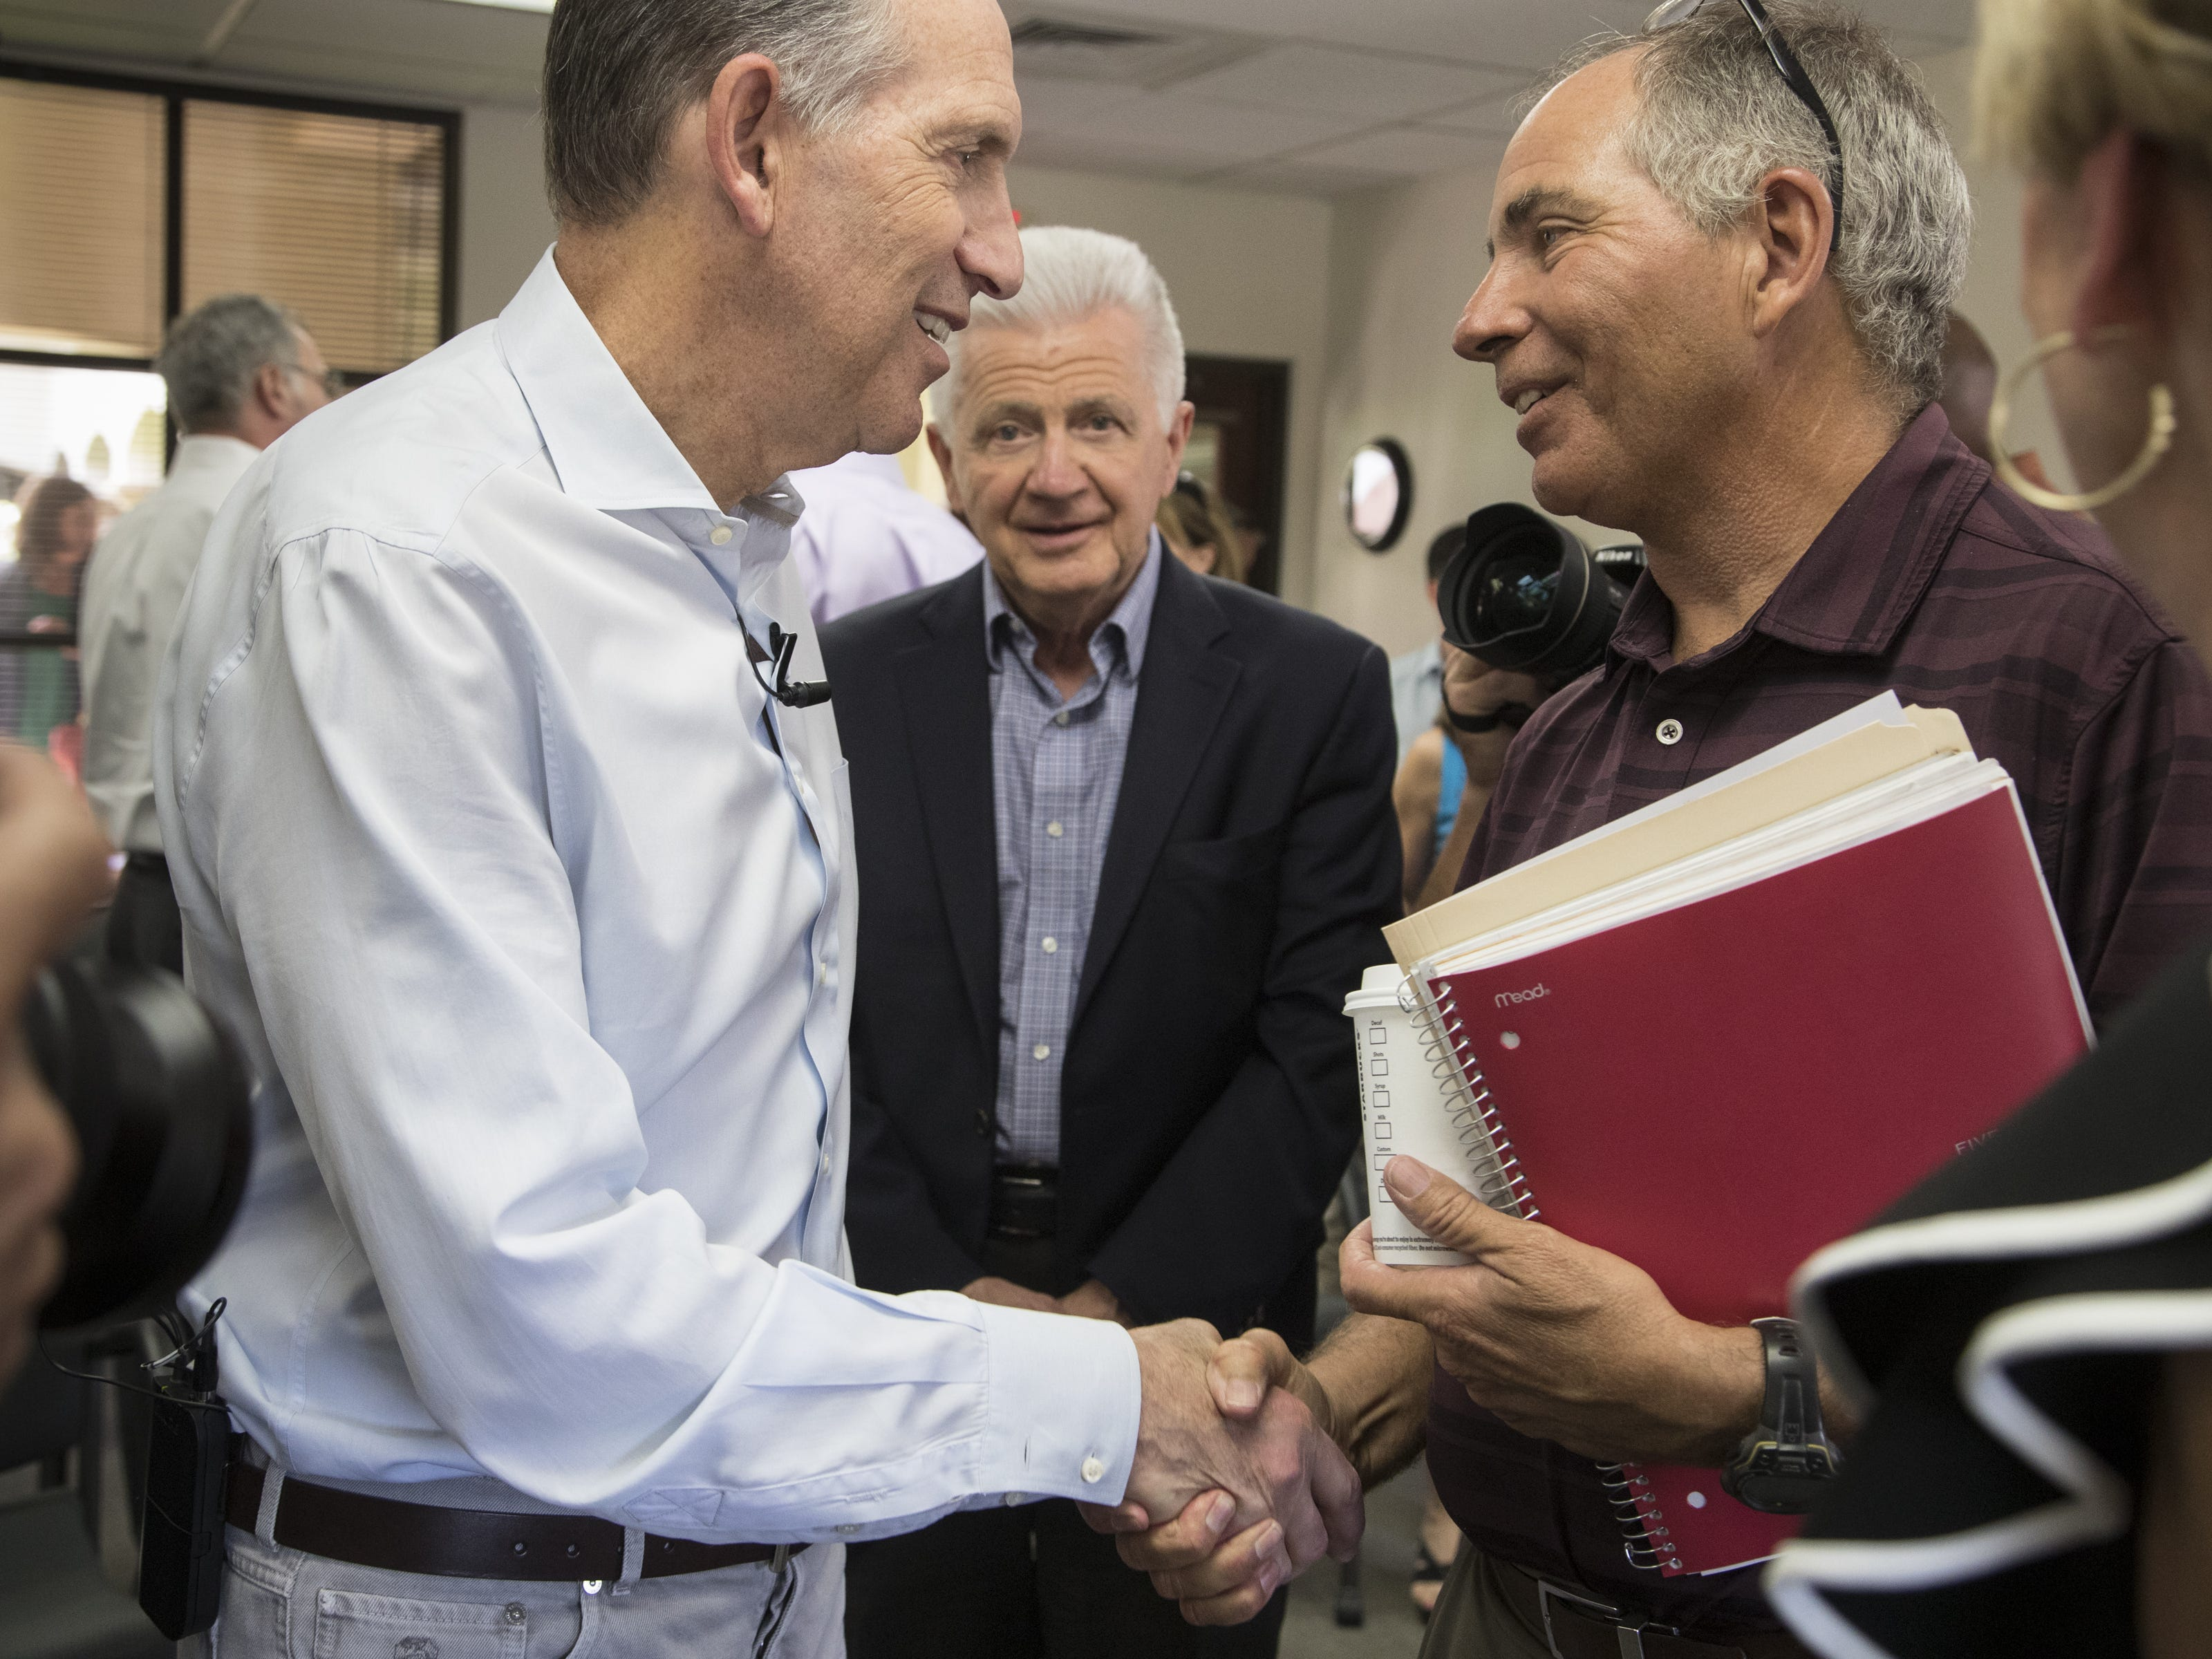 Howard Schultz greets guests after a town hall meeting on April 15, 2019, at the Scottsdale Area Chamber of Commerce in Scottsdale.